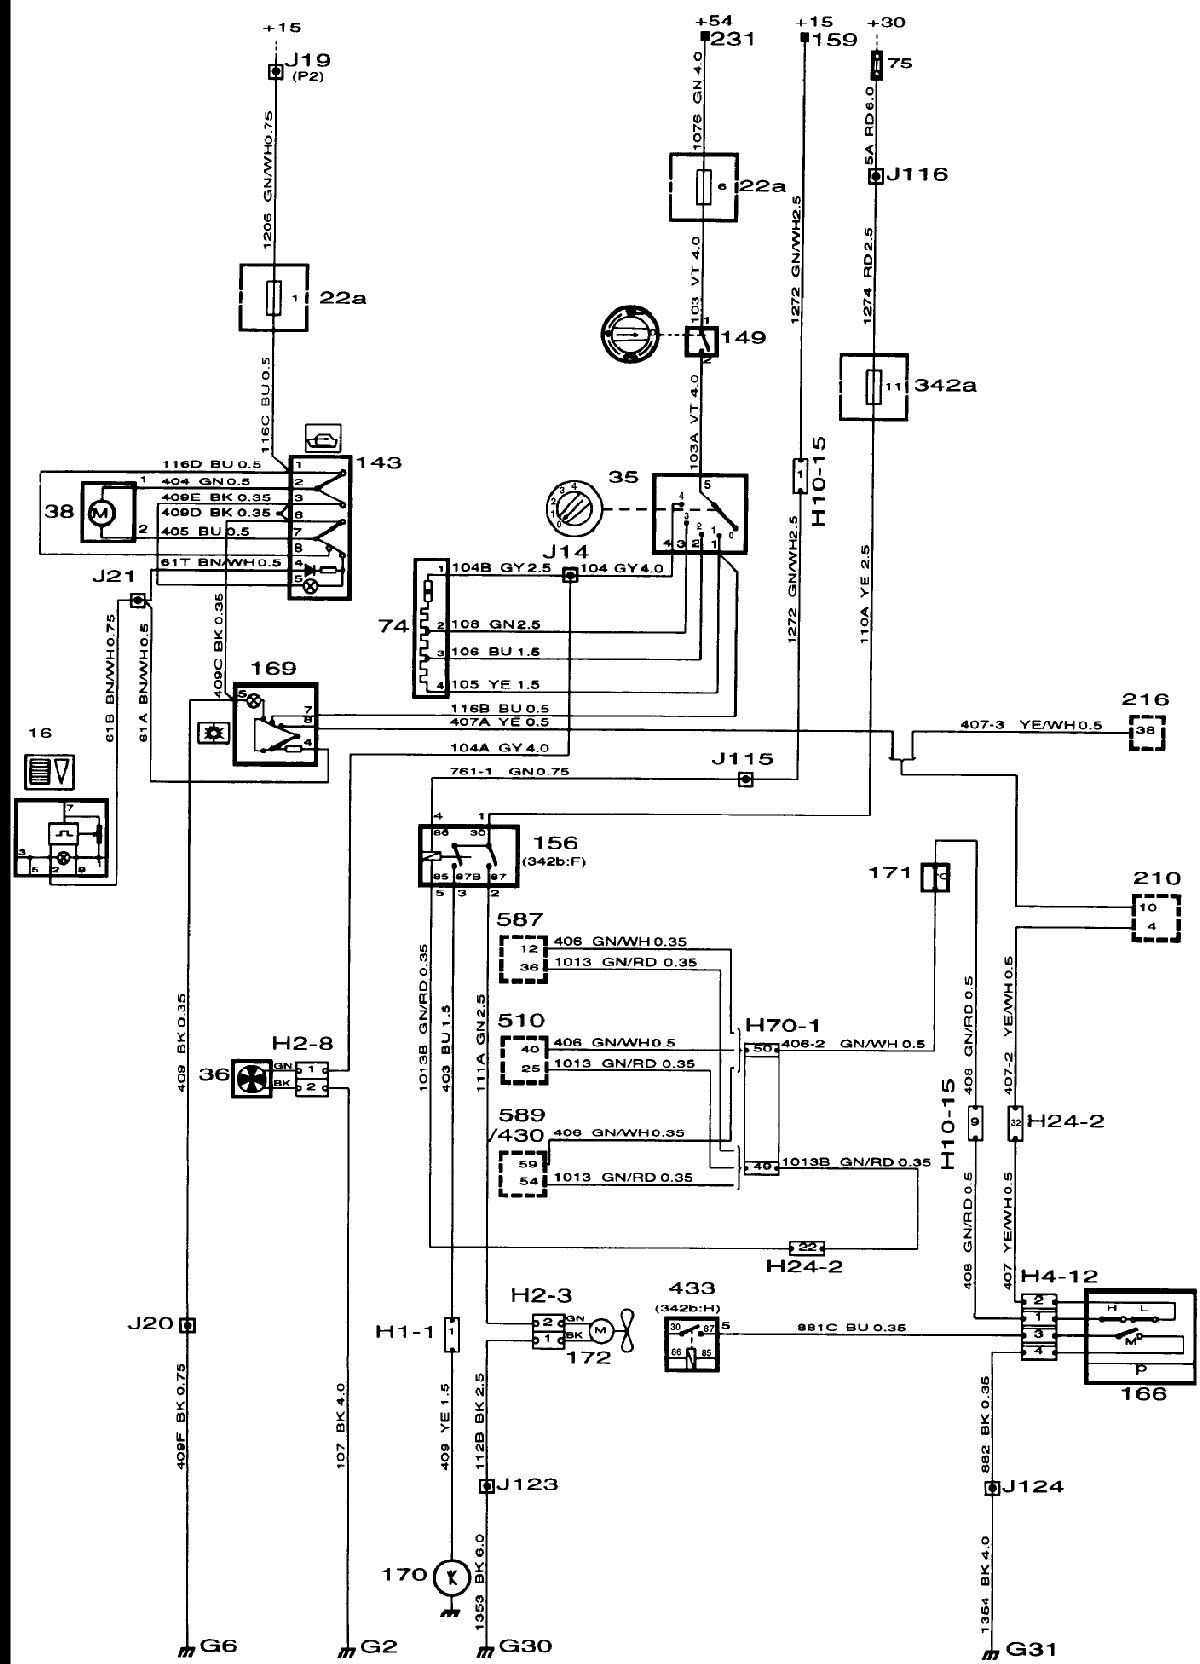 2007 saab 9 3 wiring diagram best part of wiring diagram